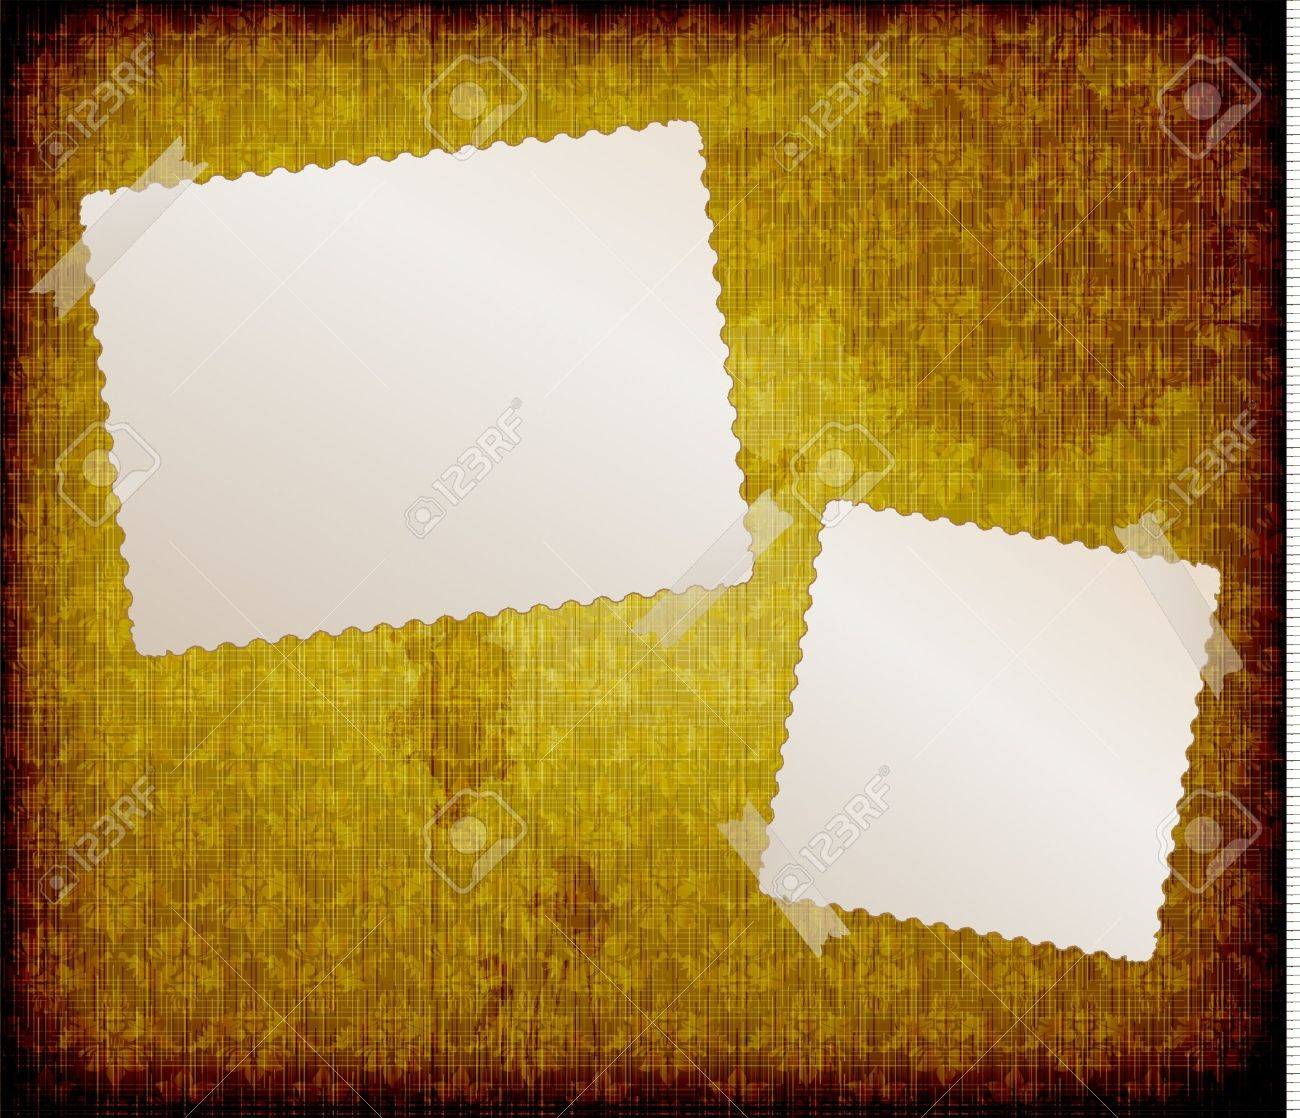 blank frames for photo on the grunge fabric background Stock Vector - 10458099